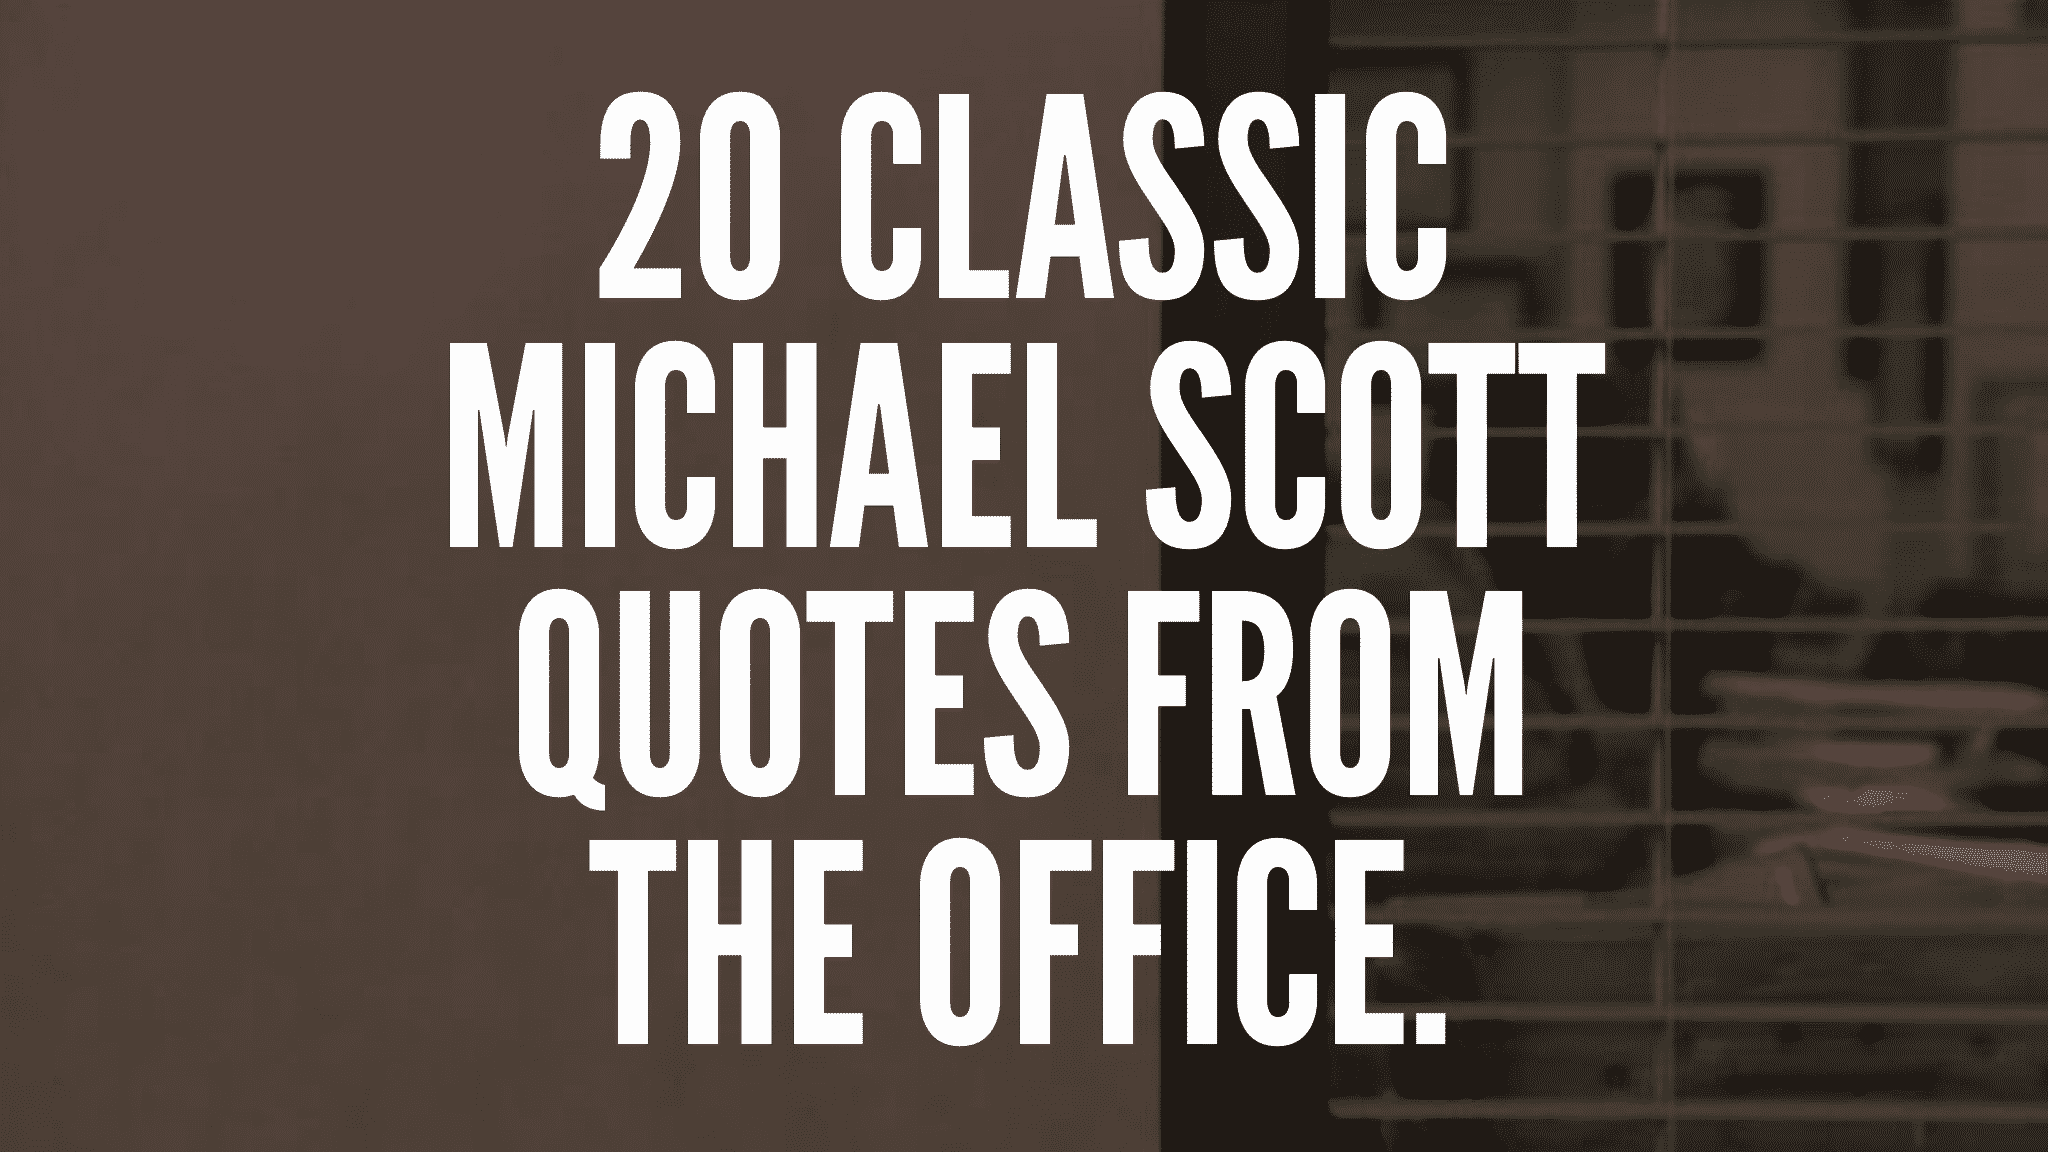 20 Classic Michael Scott Quotes From The Office